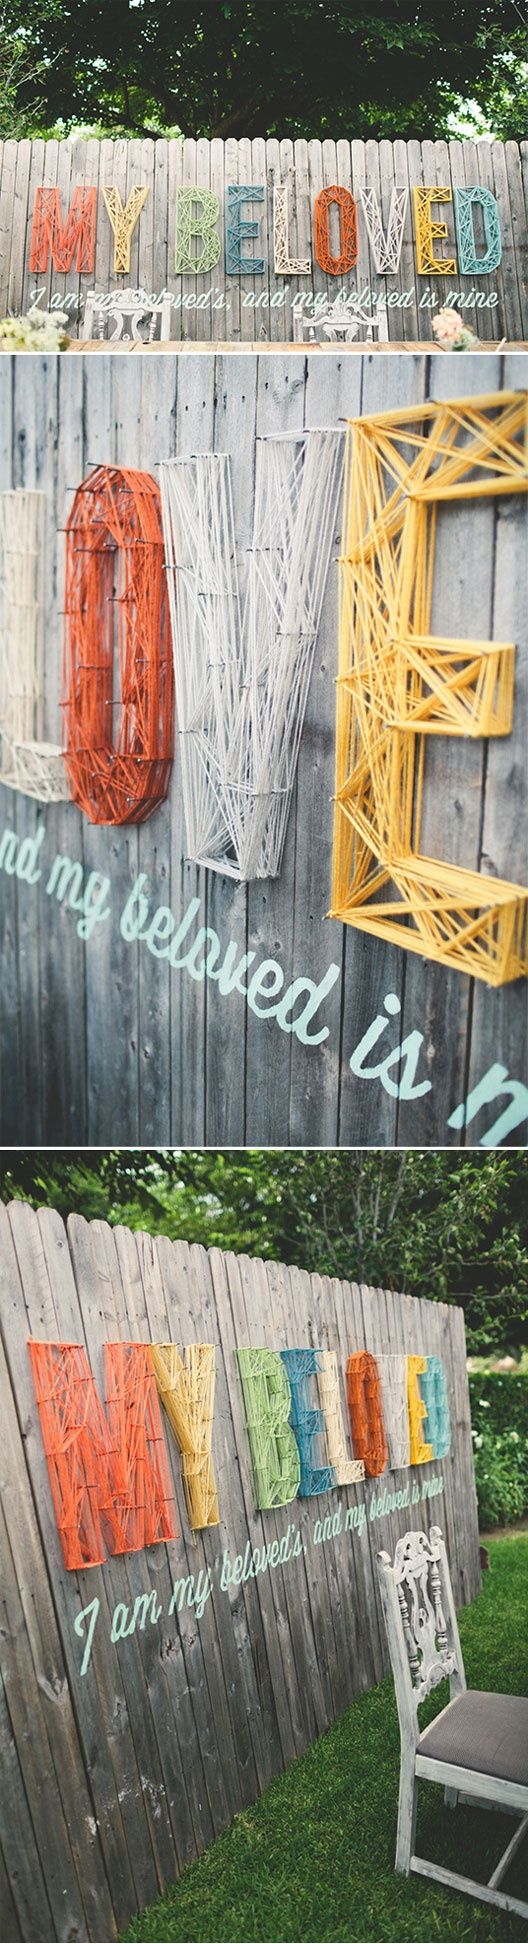 Yarn lettering on a wood fence -- I never would have thought to do this outside!